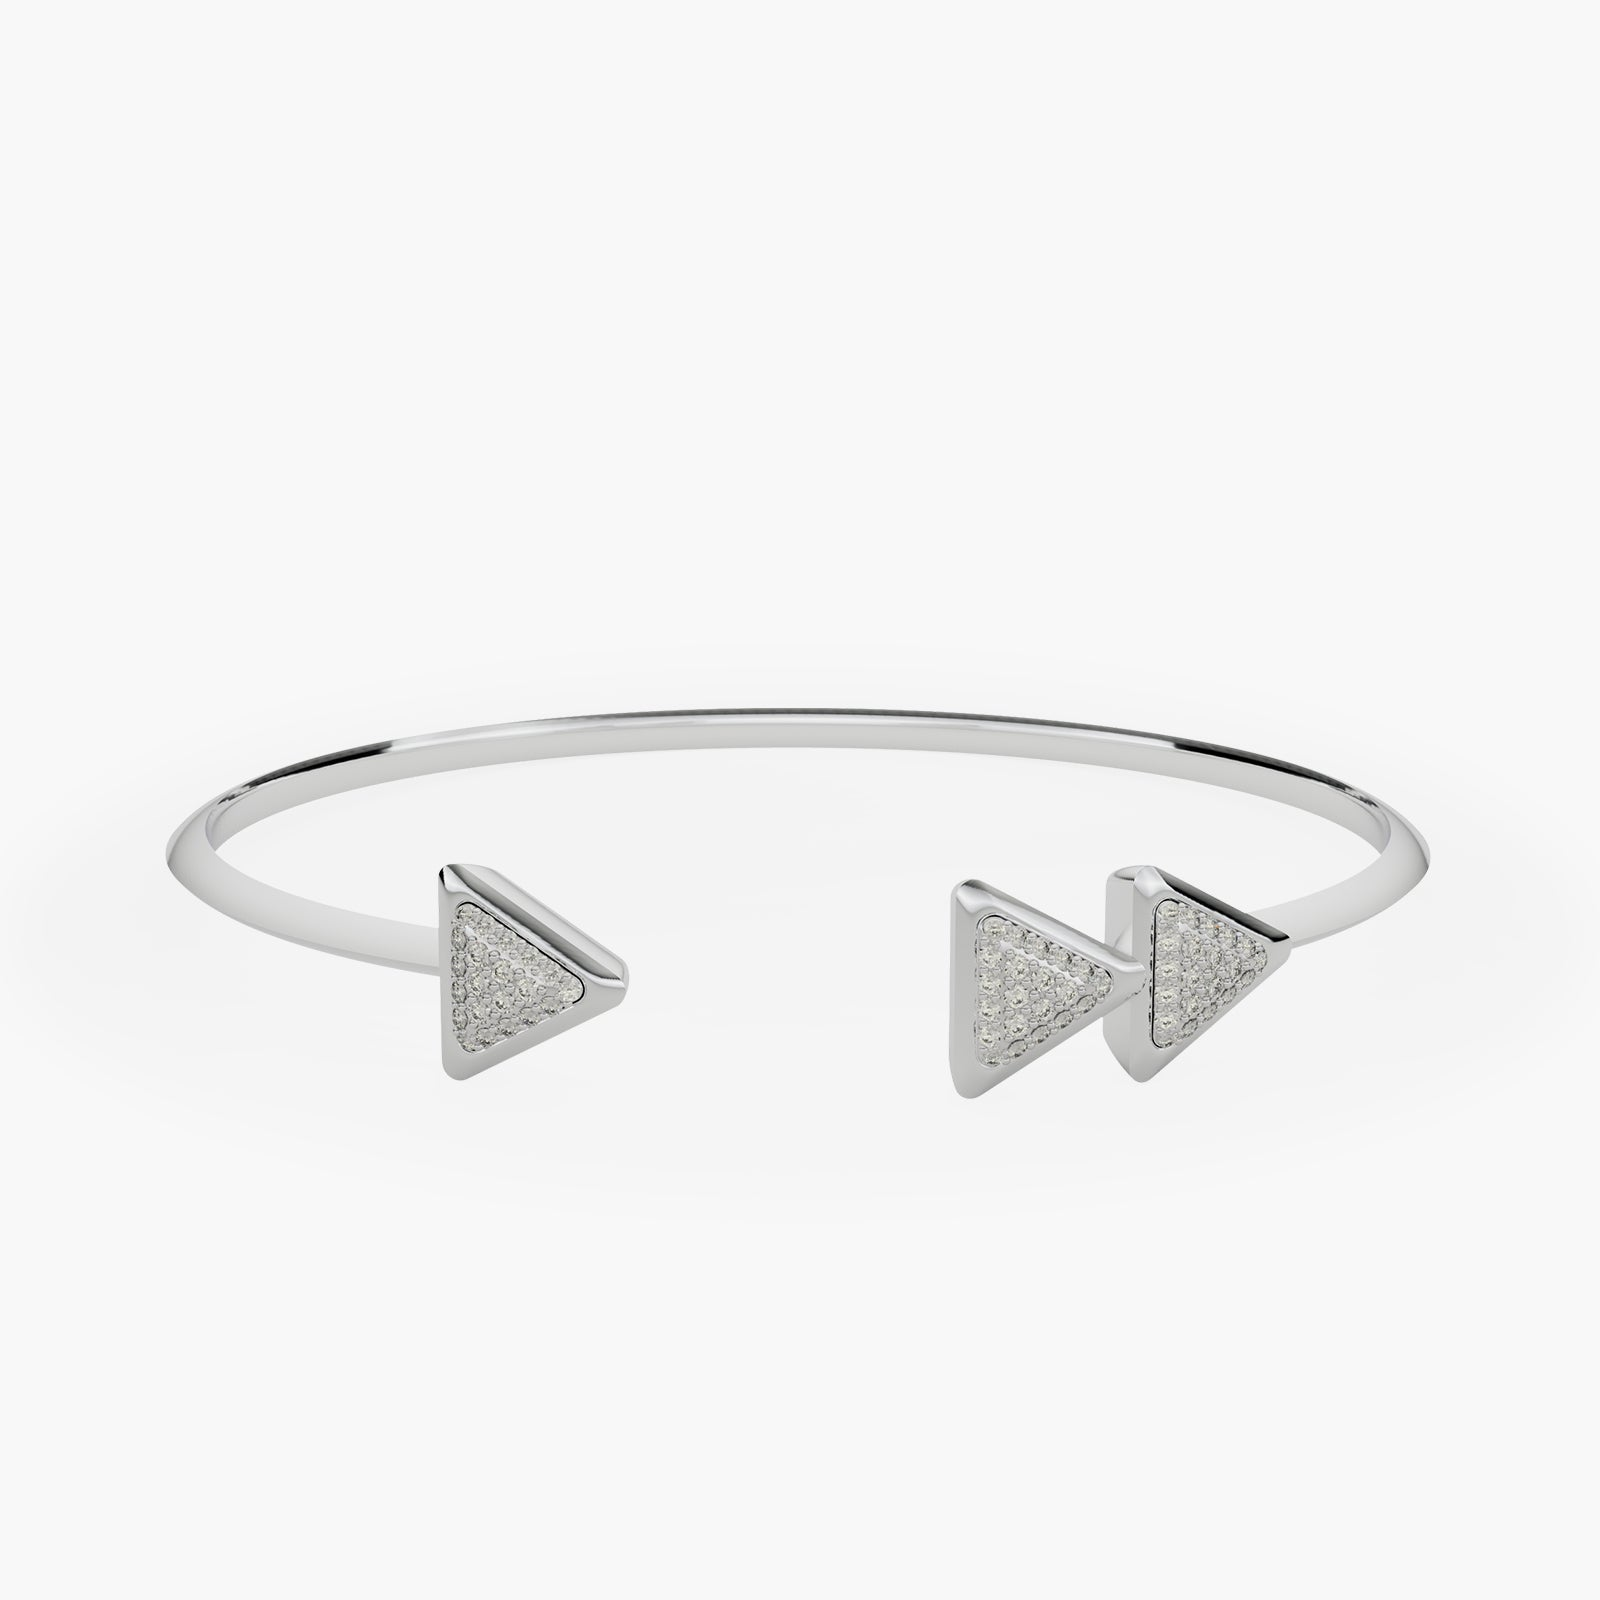 Bracelet Anniversary Dove Vai Forward White Gold Full Diamonds Pavé